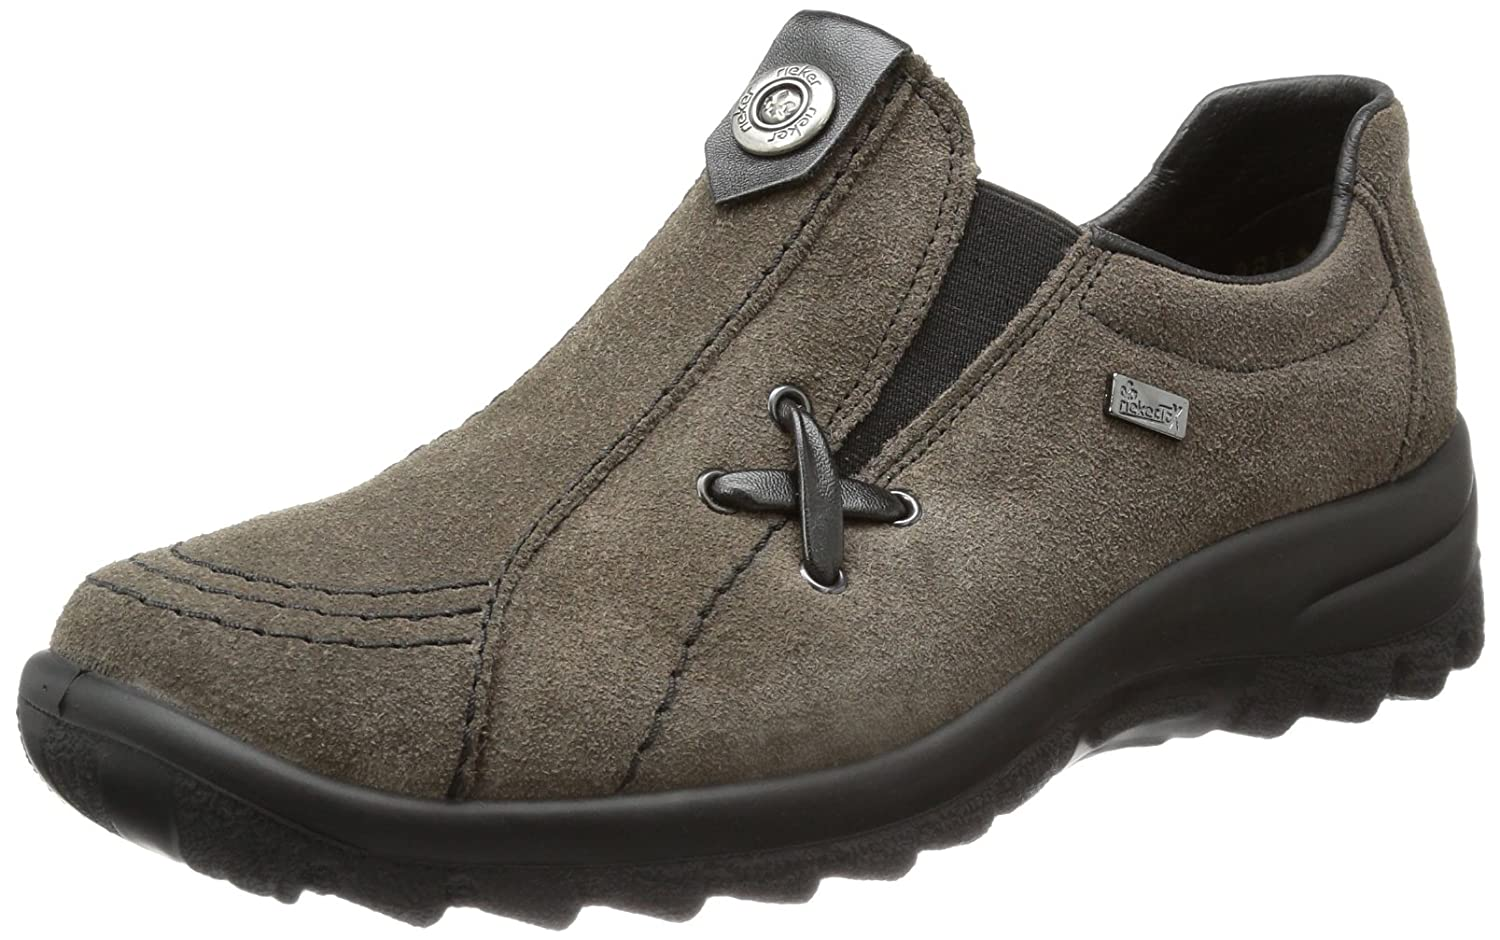 RiekerL7171 - Mocasines Mujer, color Gris, talla 36